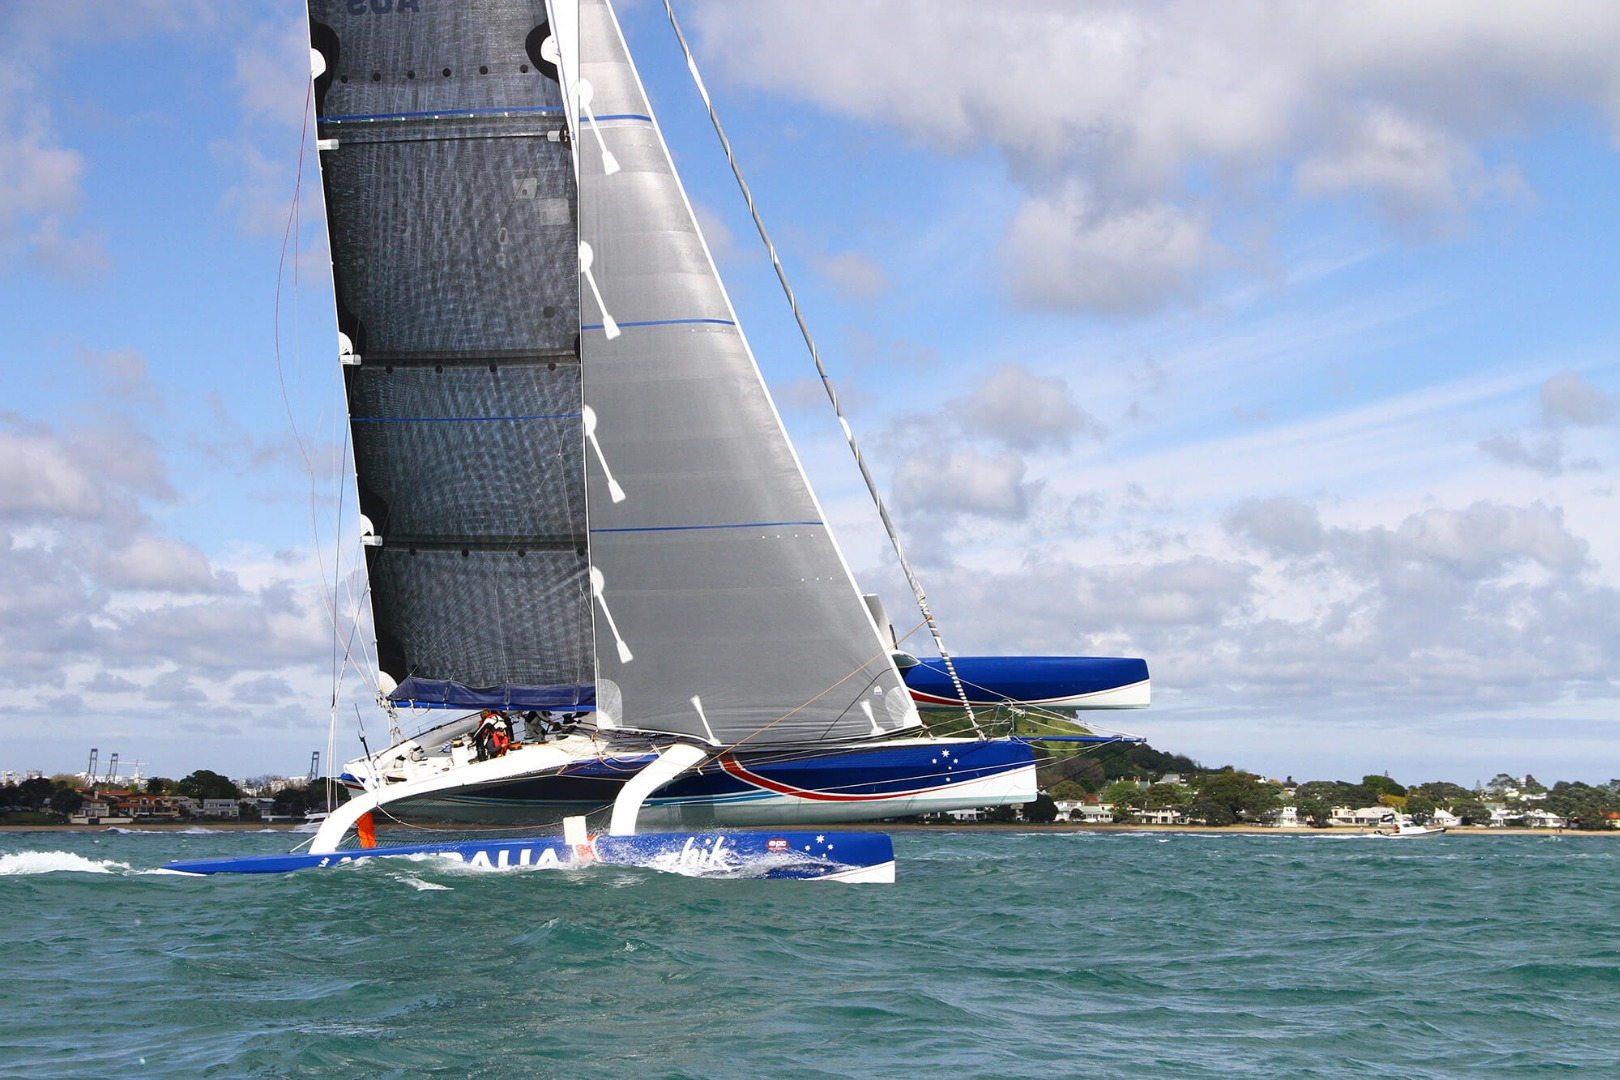 OC Performance Yacht Brokerage Services have multihulls - catamarans and trimarans for sale. We are an international yacht broker with specialist experience in the operation and sale of used, pre owned performance sailing yachts and have a long history in sailing and designing cruising and racing multihulls.